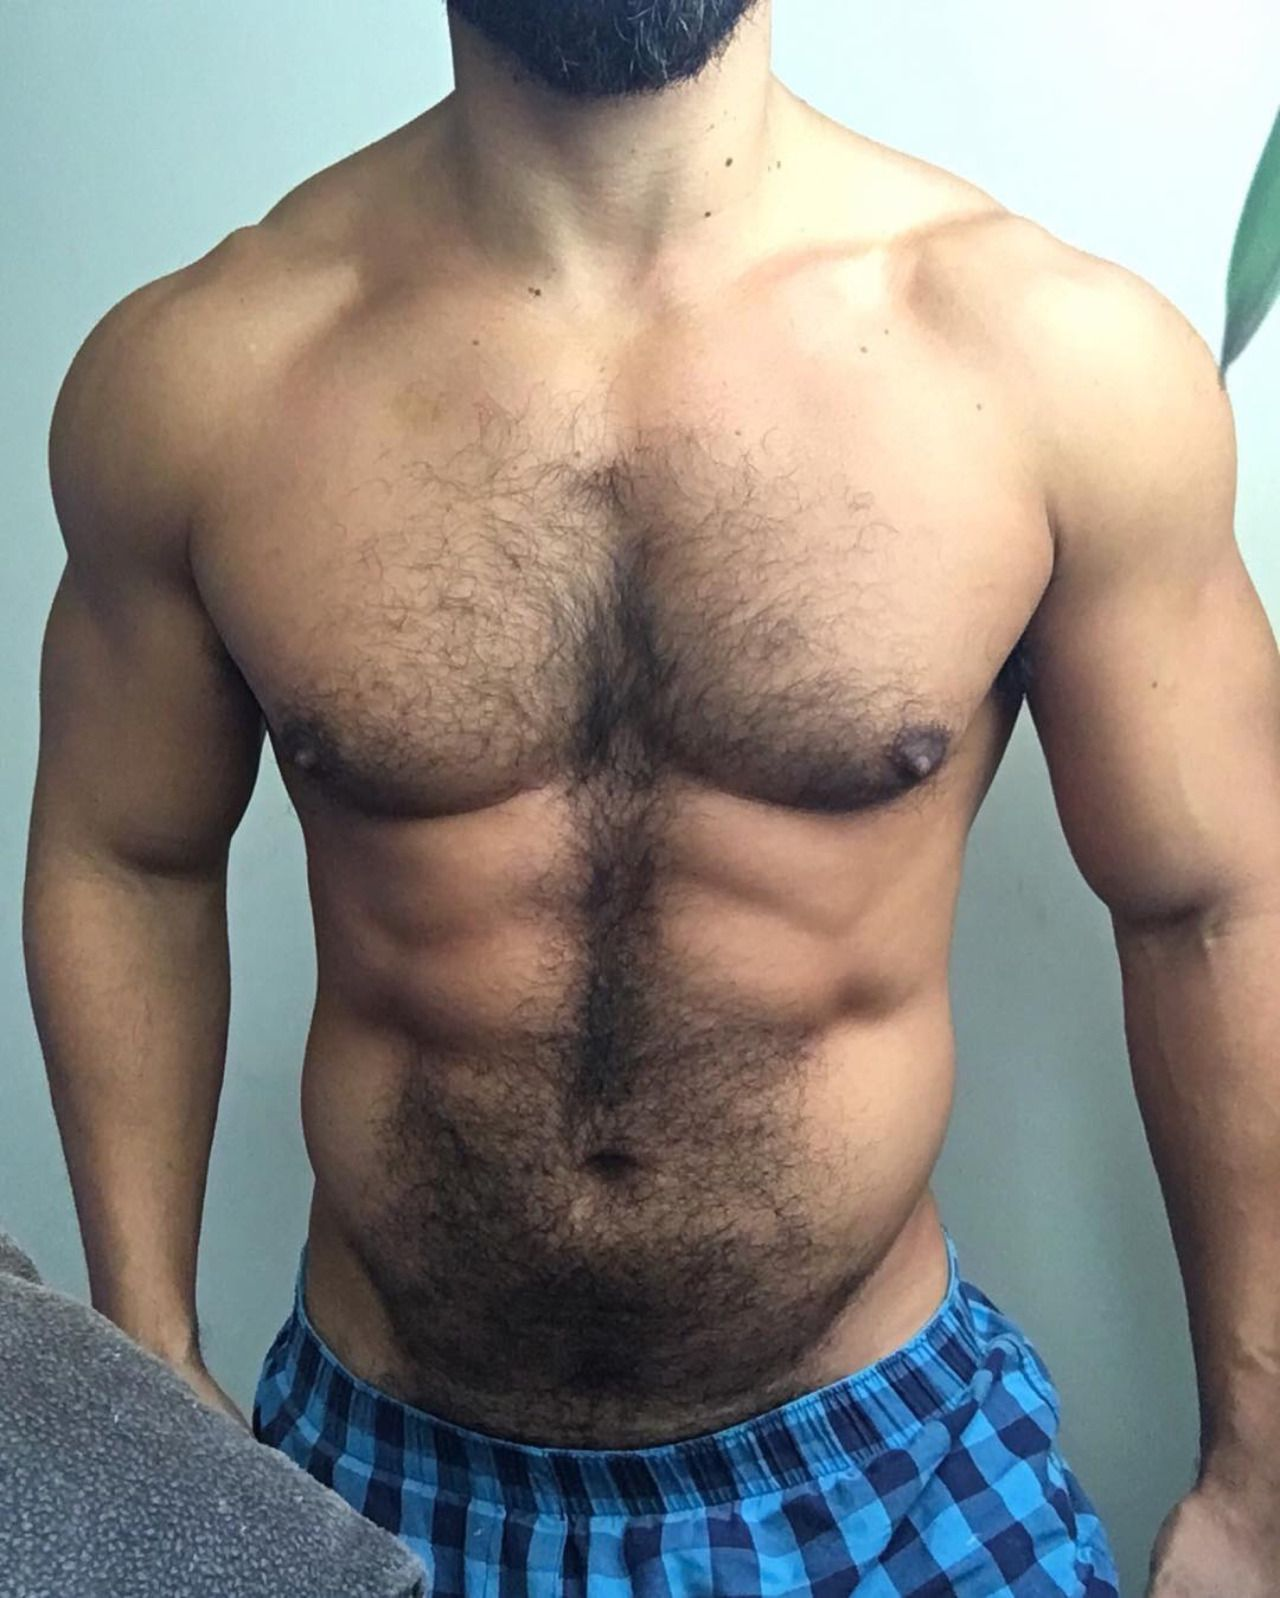 Incredible hairy pits and pubes